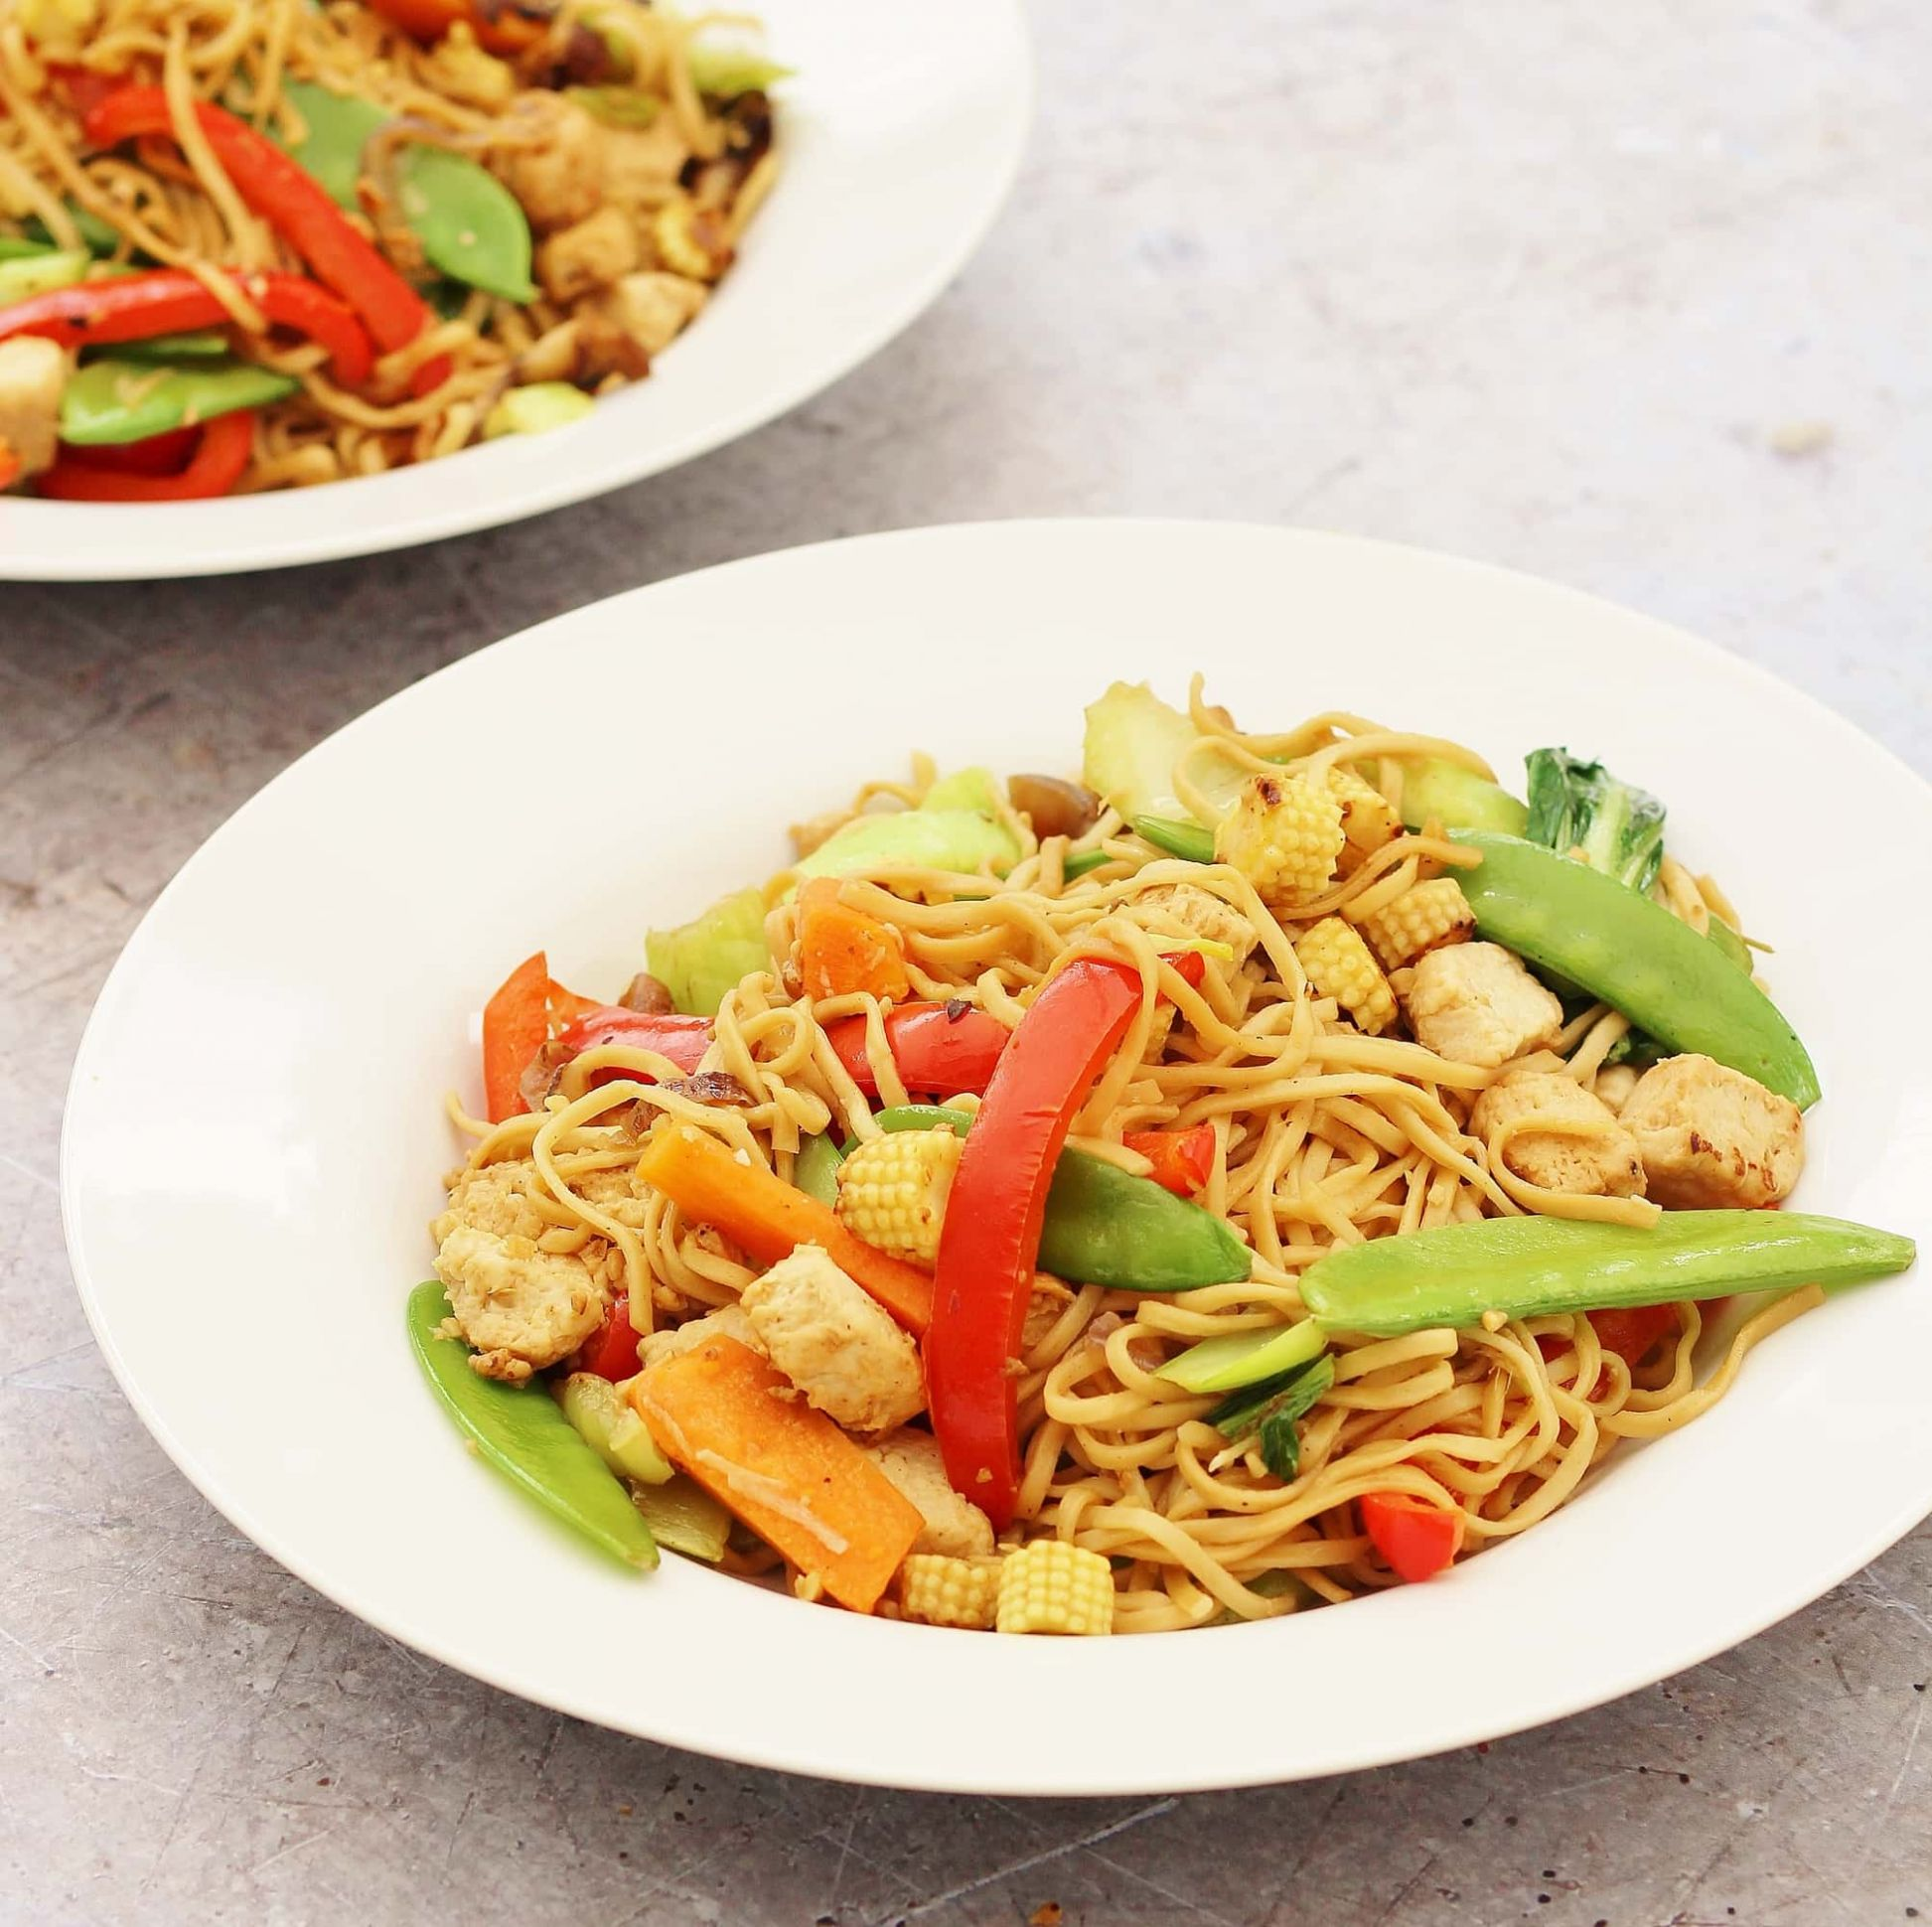 Easy Quorn Stir Fry with Noodles - Simple Quorn Recipes